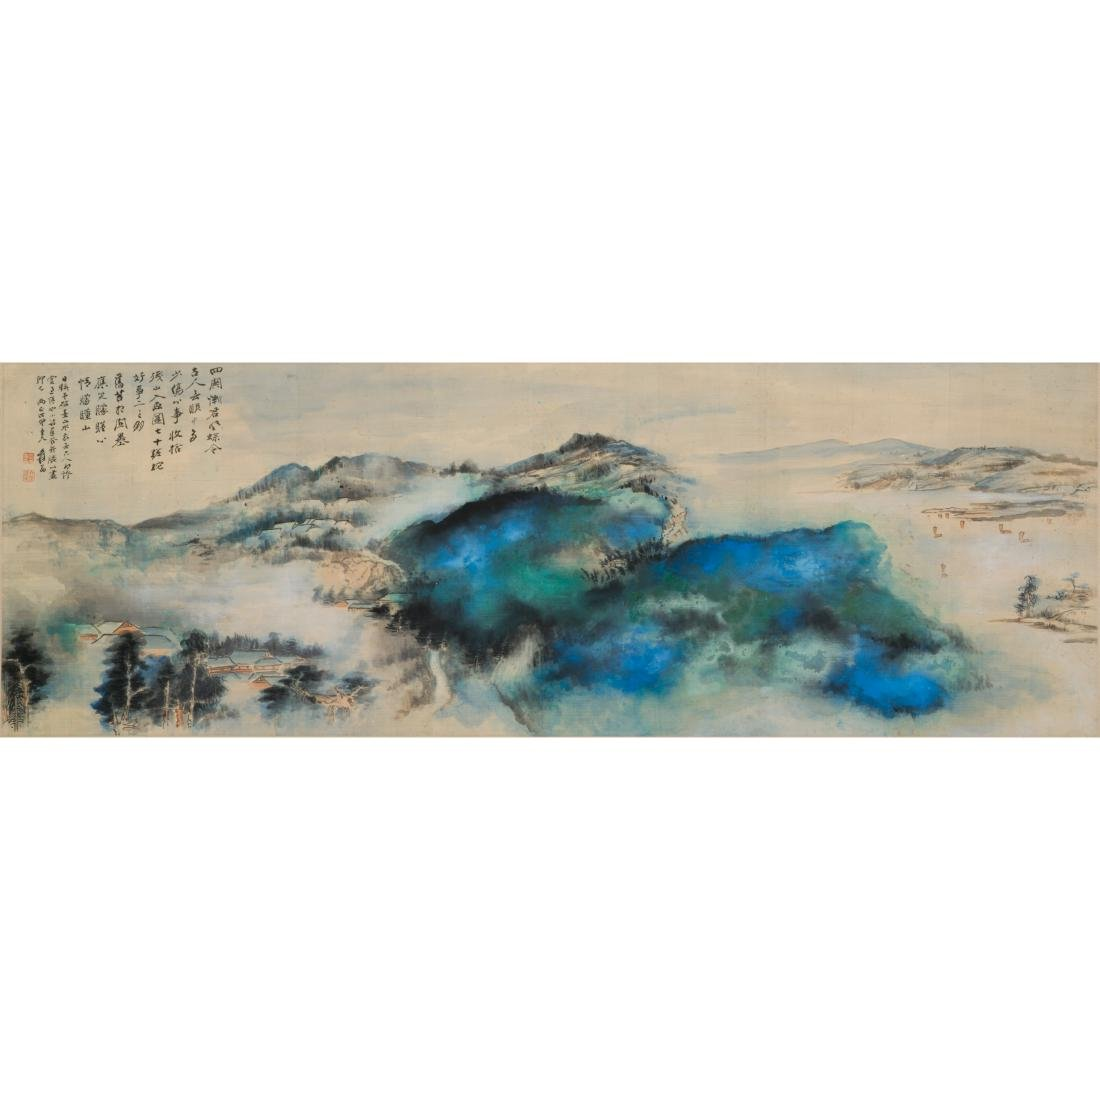 1968 ZHANG DAQIAN FRAMED BRILLIANT LANDSCAPE PAINTING - 6